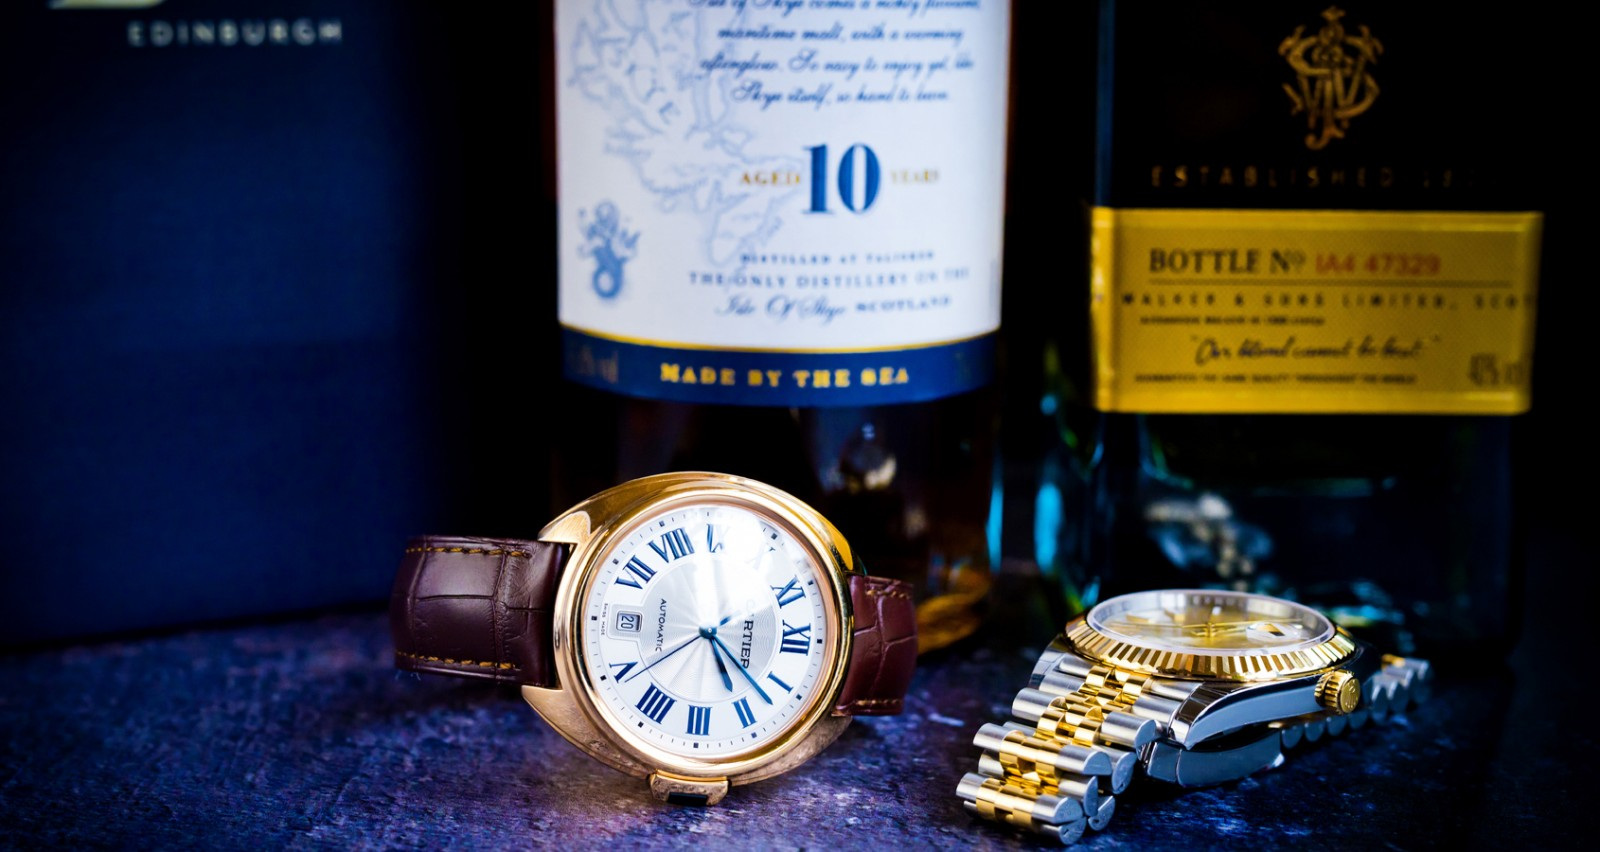 kickstarter the original whiskey watches grain wood projects originalgrain handcrafted made barrel watch by w